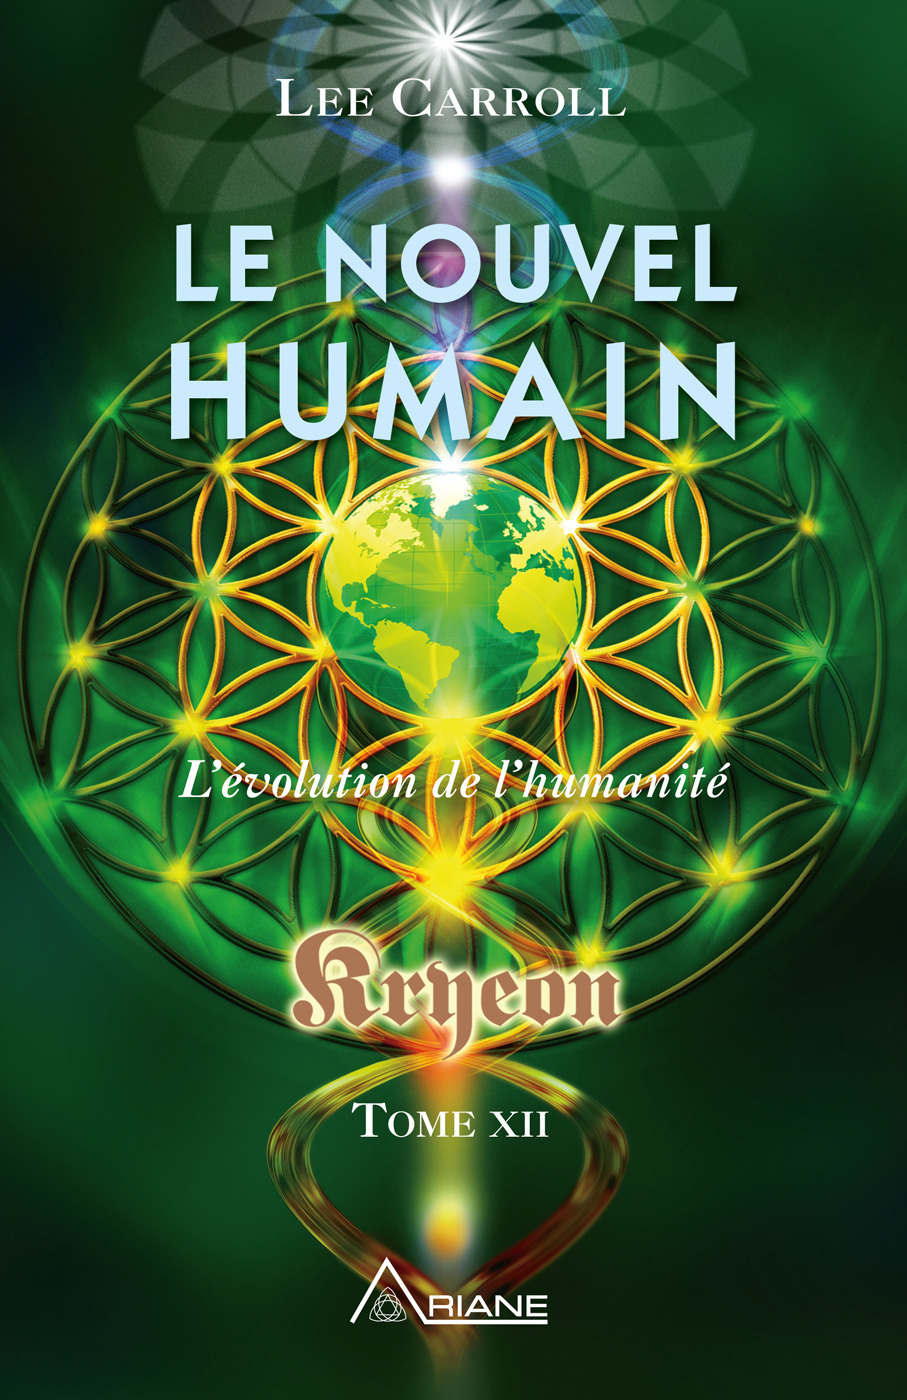 Lee Carroll Le nouvel humain - Kryeon tome XII